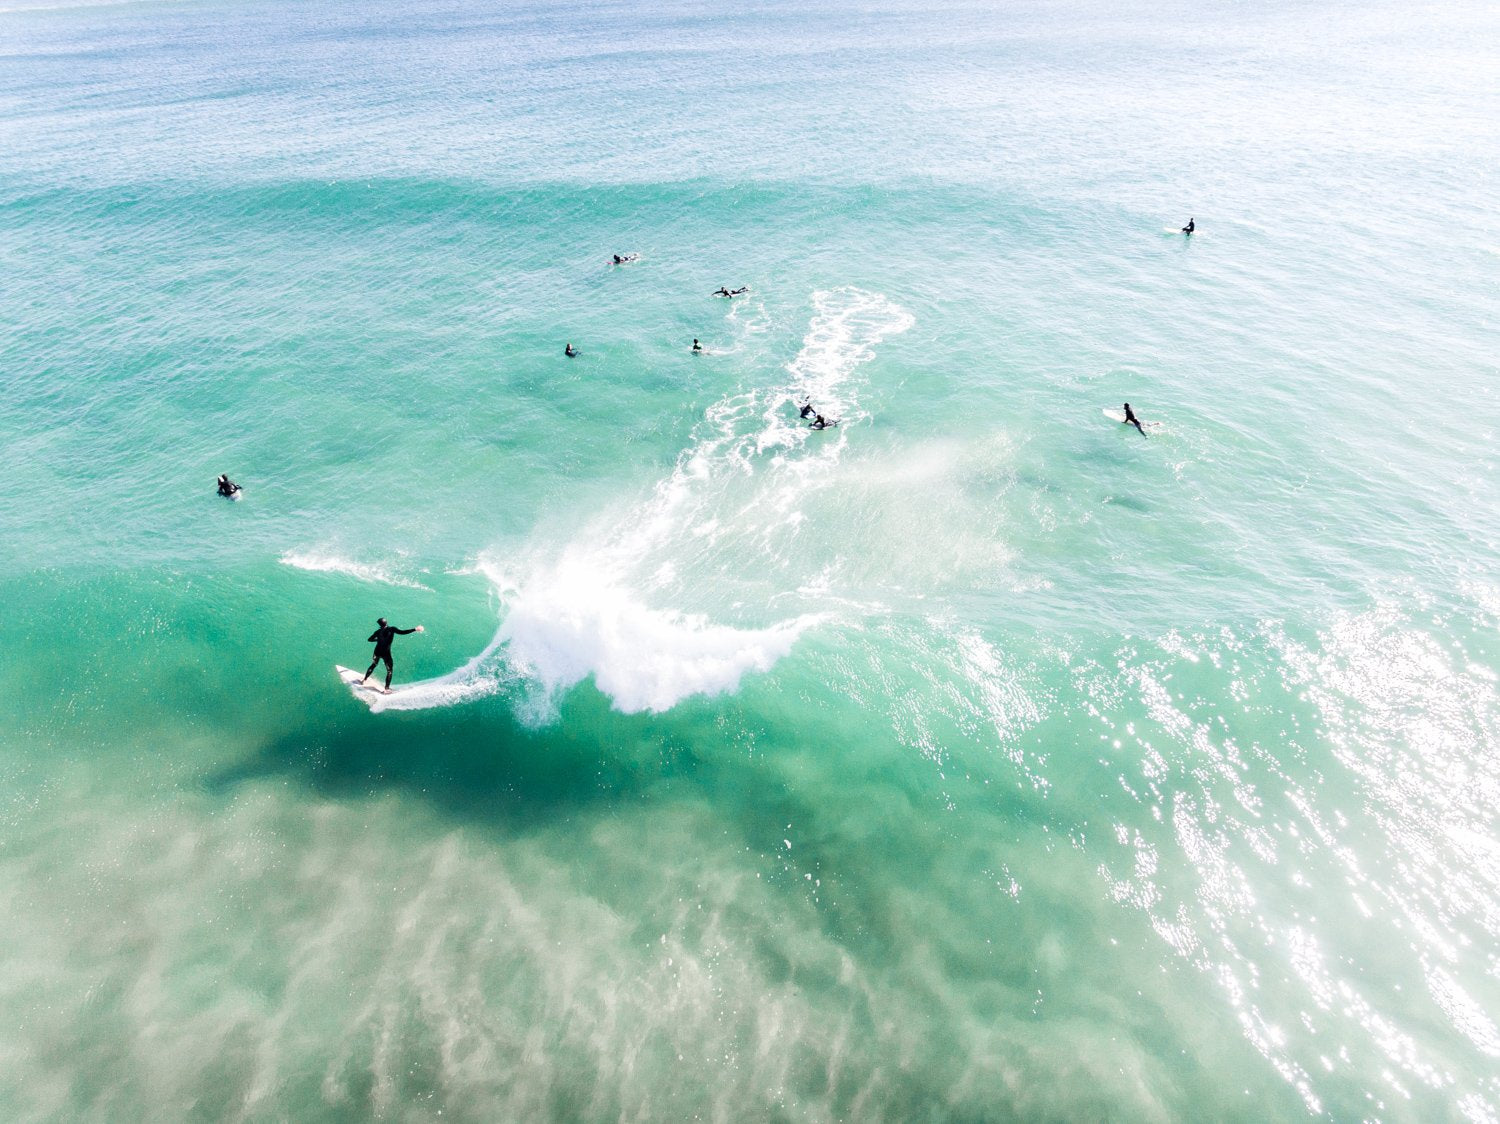 Aerial of surfer carving on a green wave taken at Llandudno Beach in Cape Town